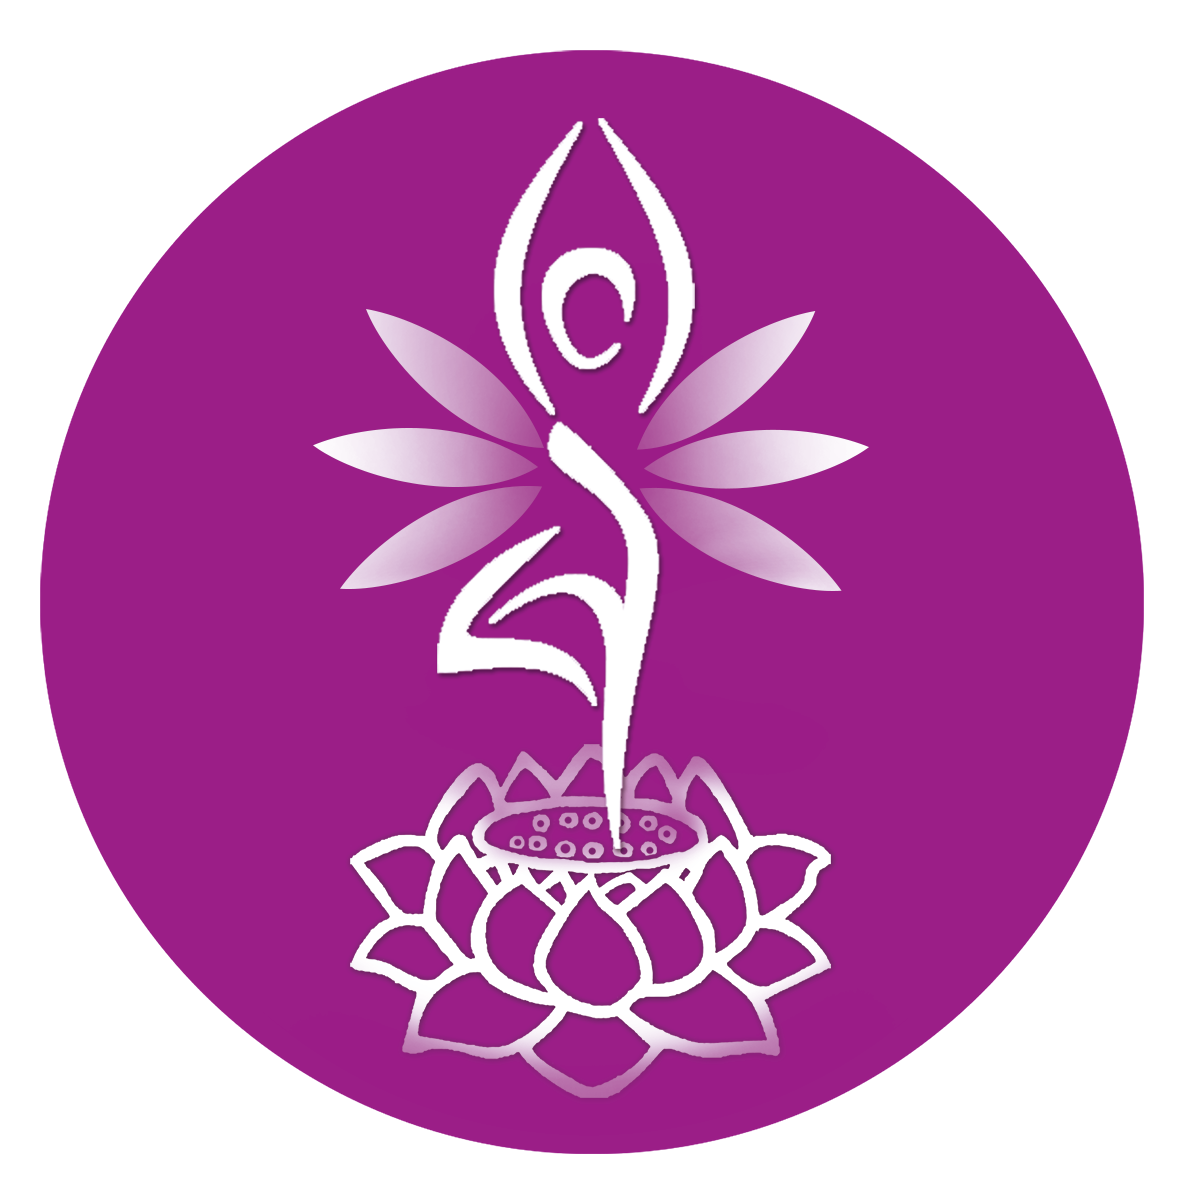 Logo River Yoga Issyk Icon HQ Image Free PNG PNG Image